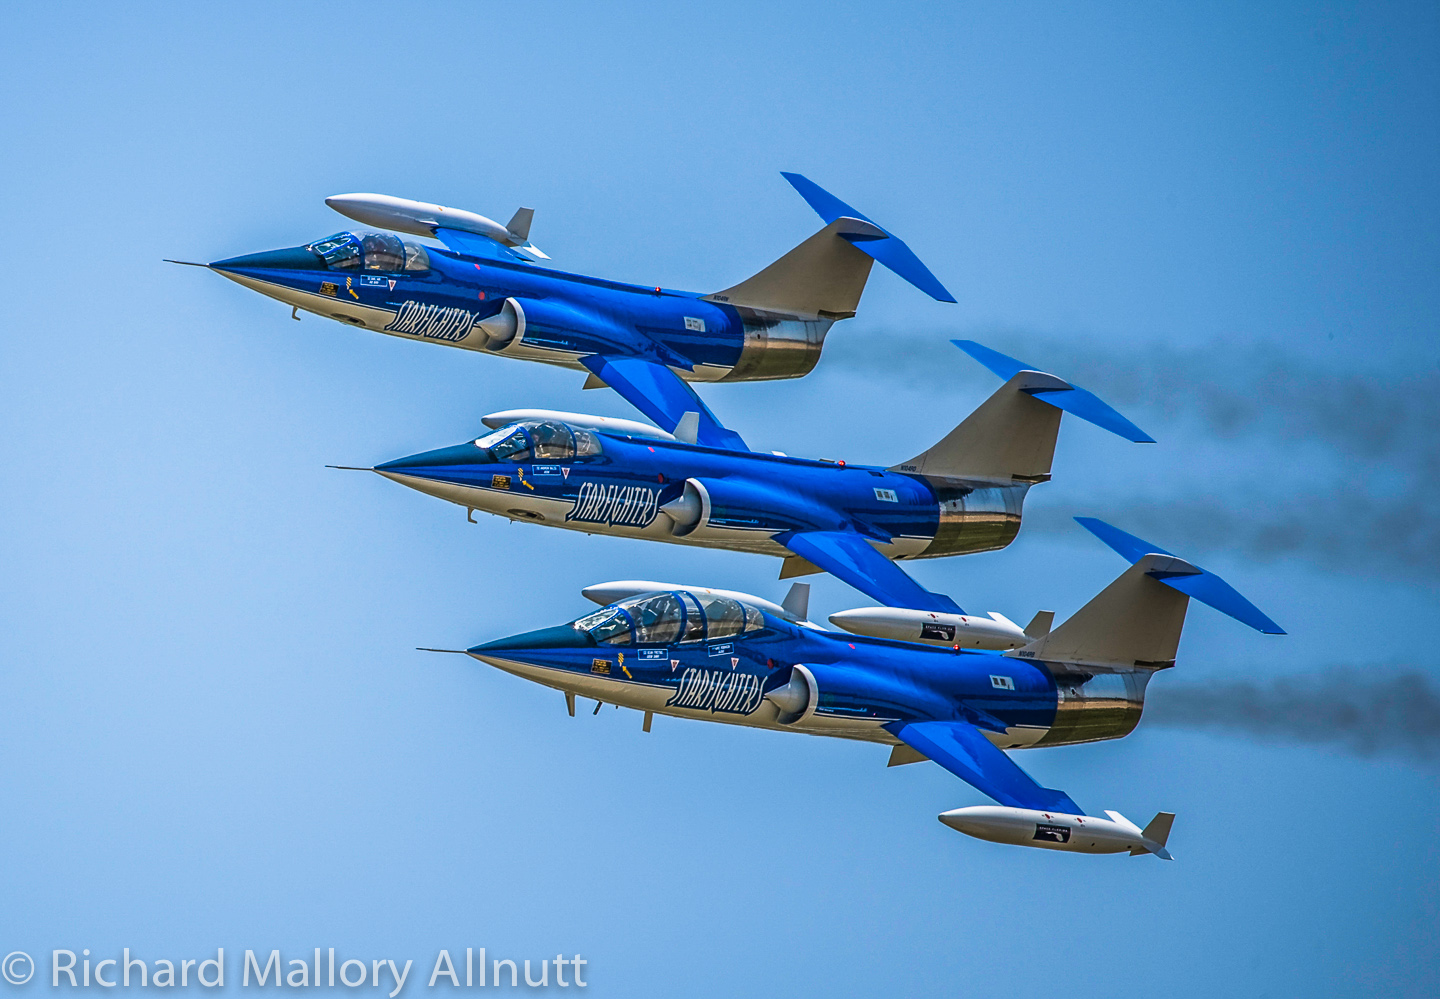 Three of the company's CF-104 Starfighters tucked into tight formation at Joint Base Andrews in Clinton, Maryland during the now biannual air show. (photo by Richard Mallory Allnutt)